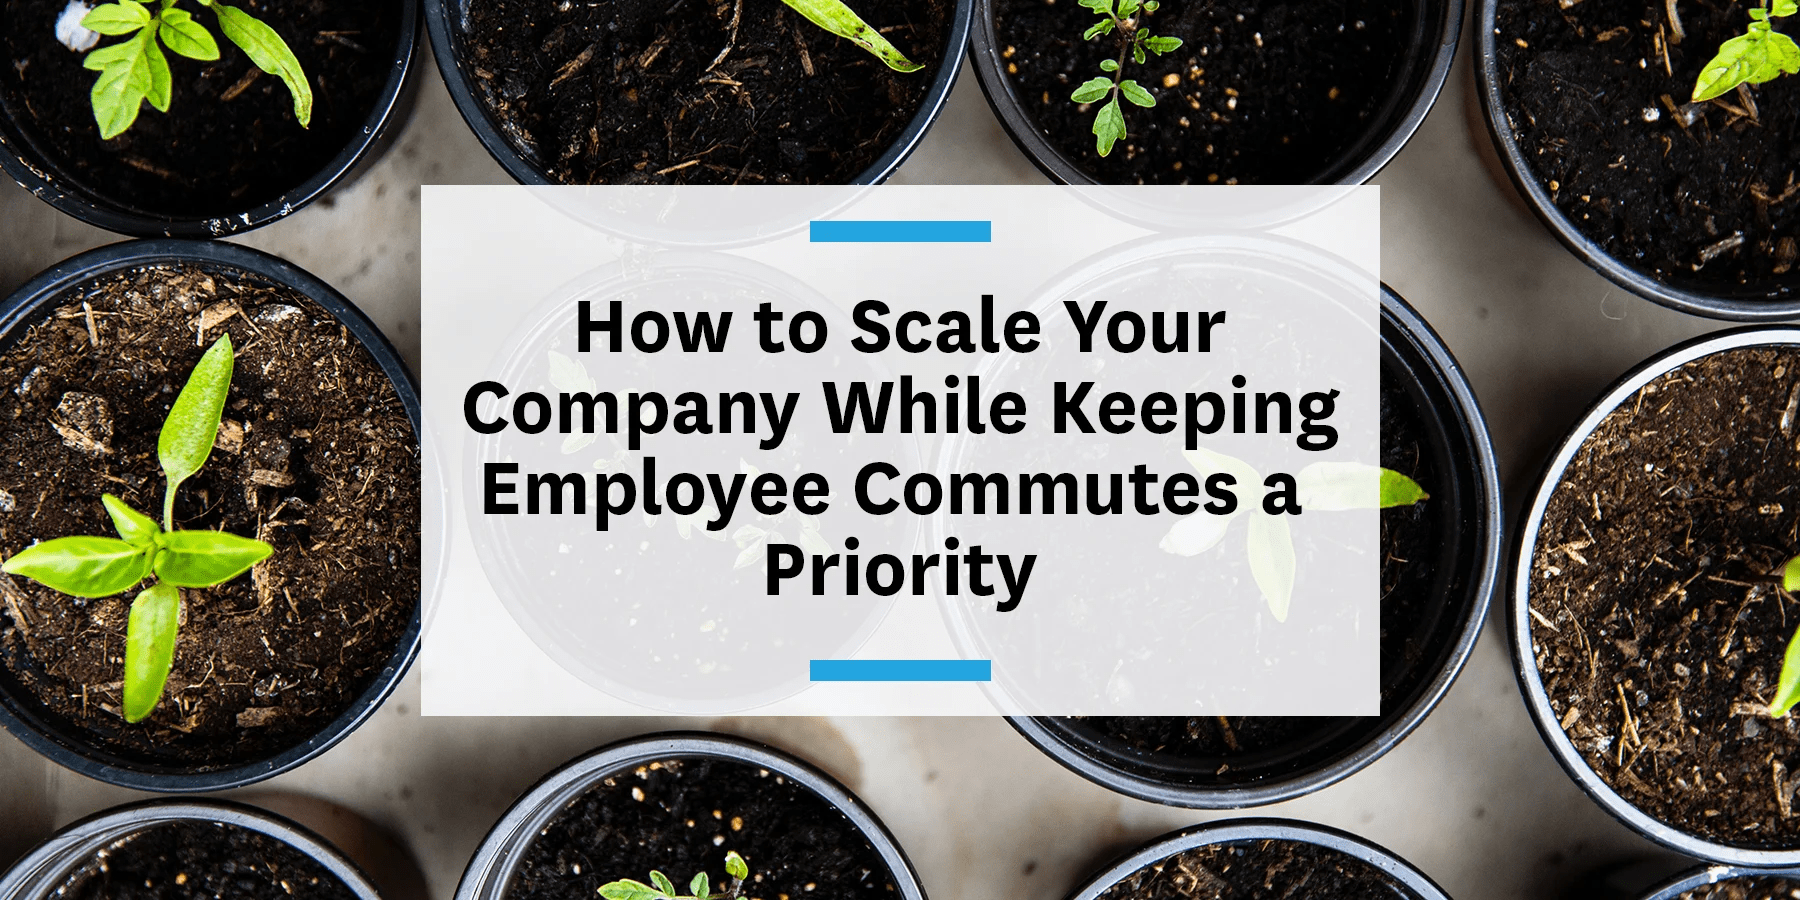 Feature image for scaling your company and keeping employee commutes a priority